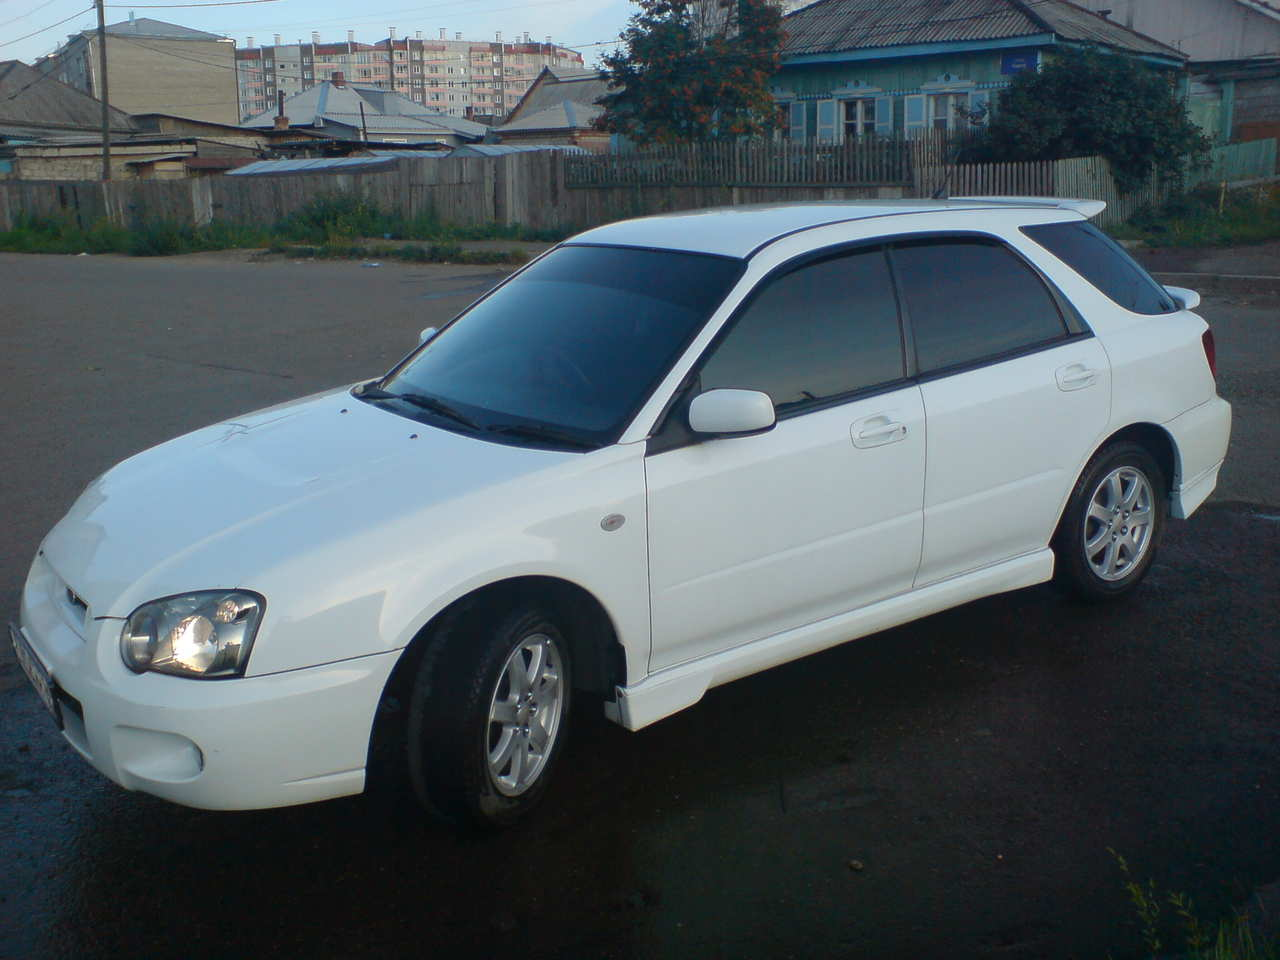 used 2003 subaru impreza wagon photos 1500cc gasoline manual for sale. Black Bedroom Furniture Sets. Home Design Ideas